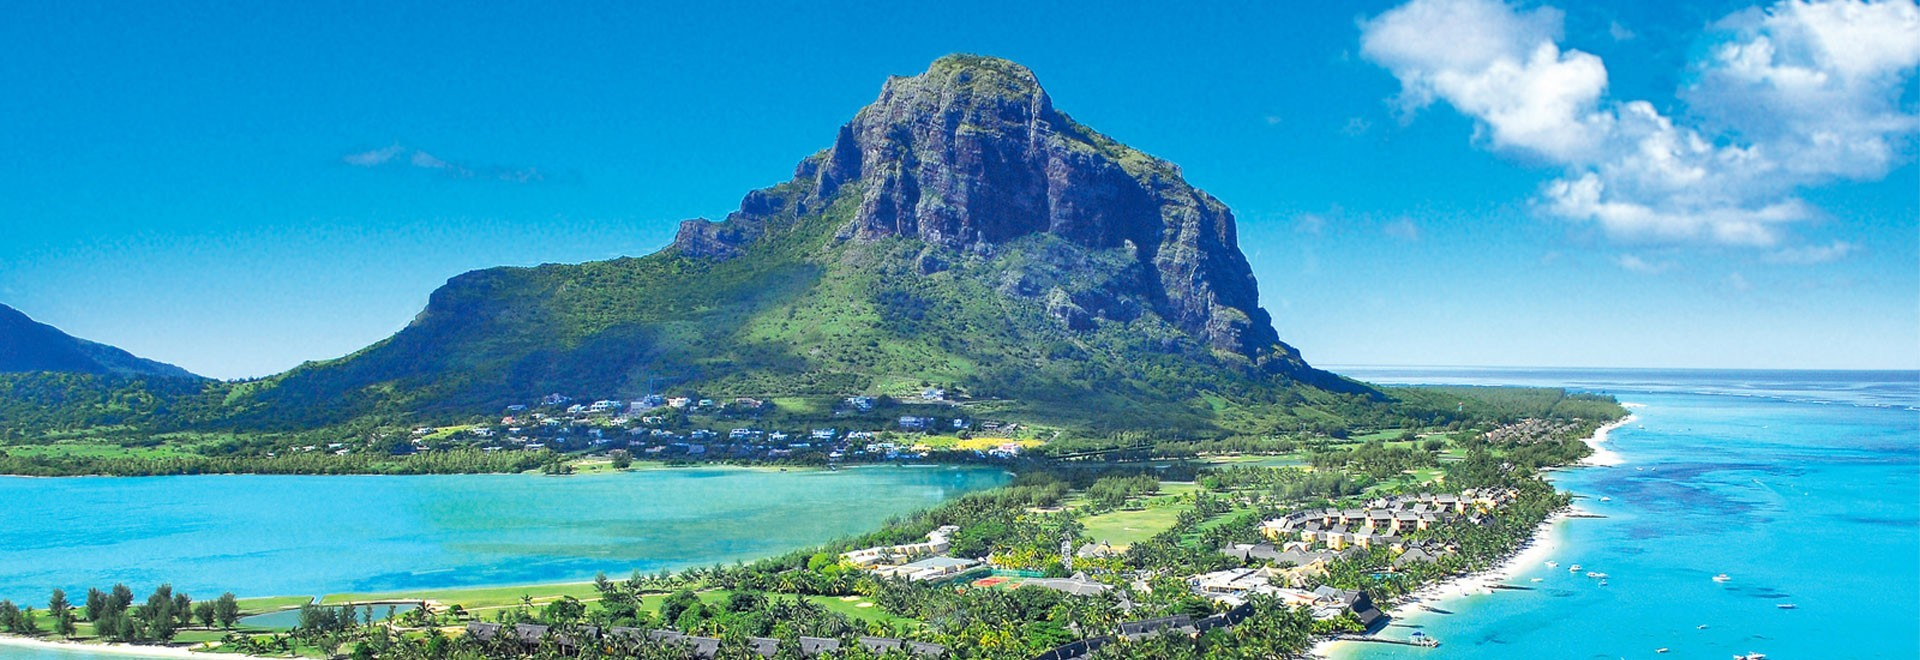 Paradis Hotel & Golf Club, Le Morne - Book. Travel. Play.